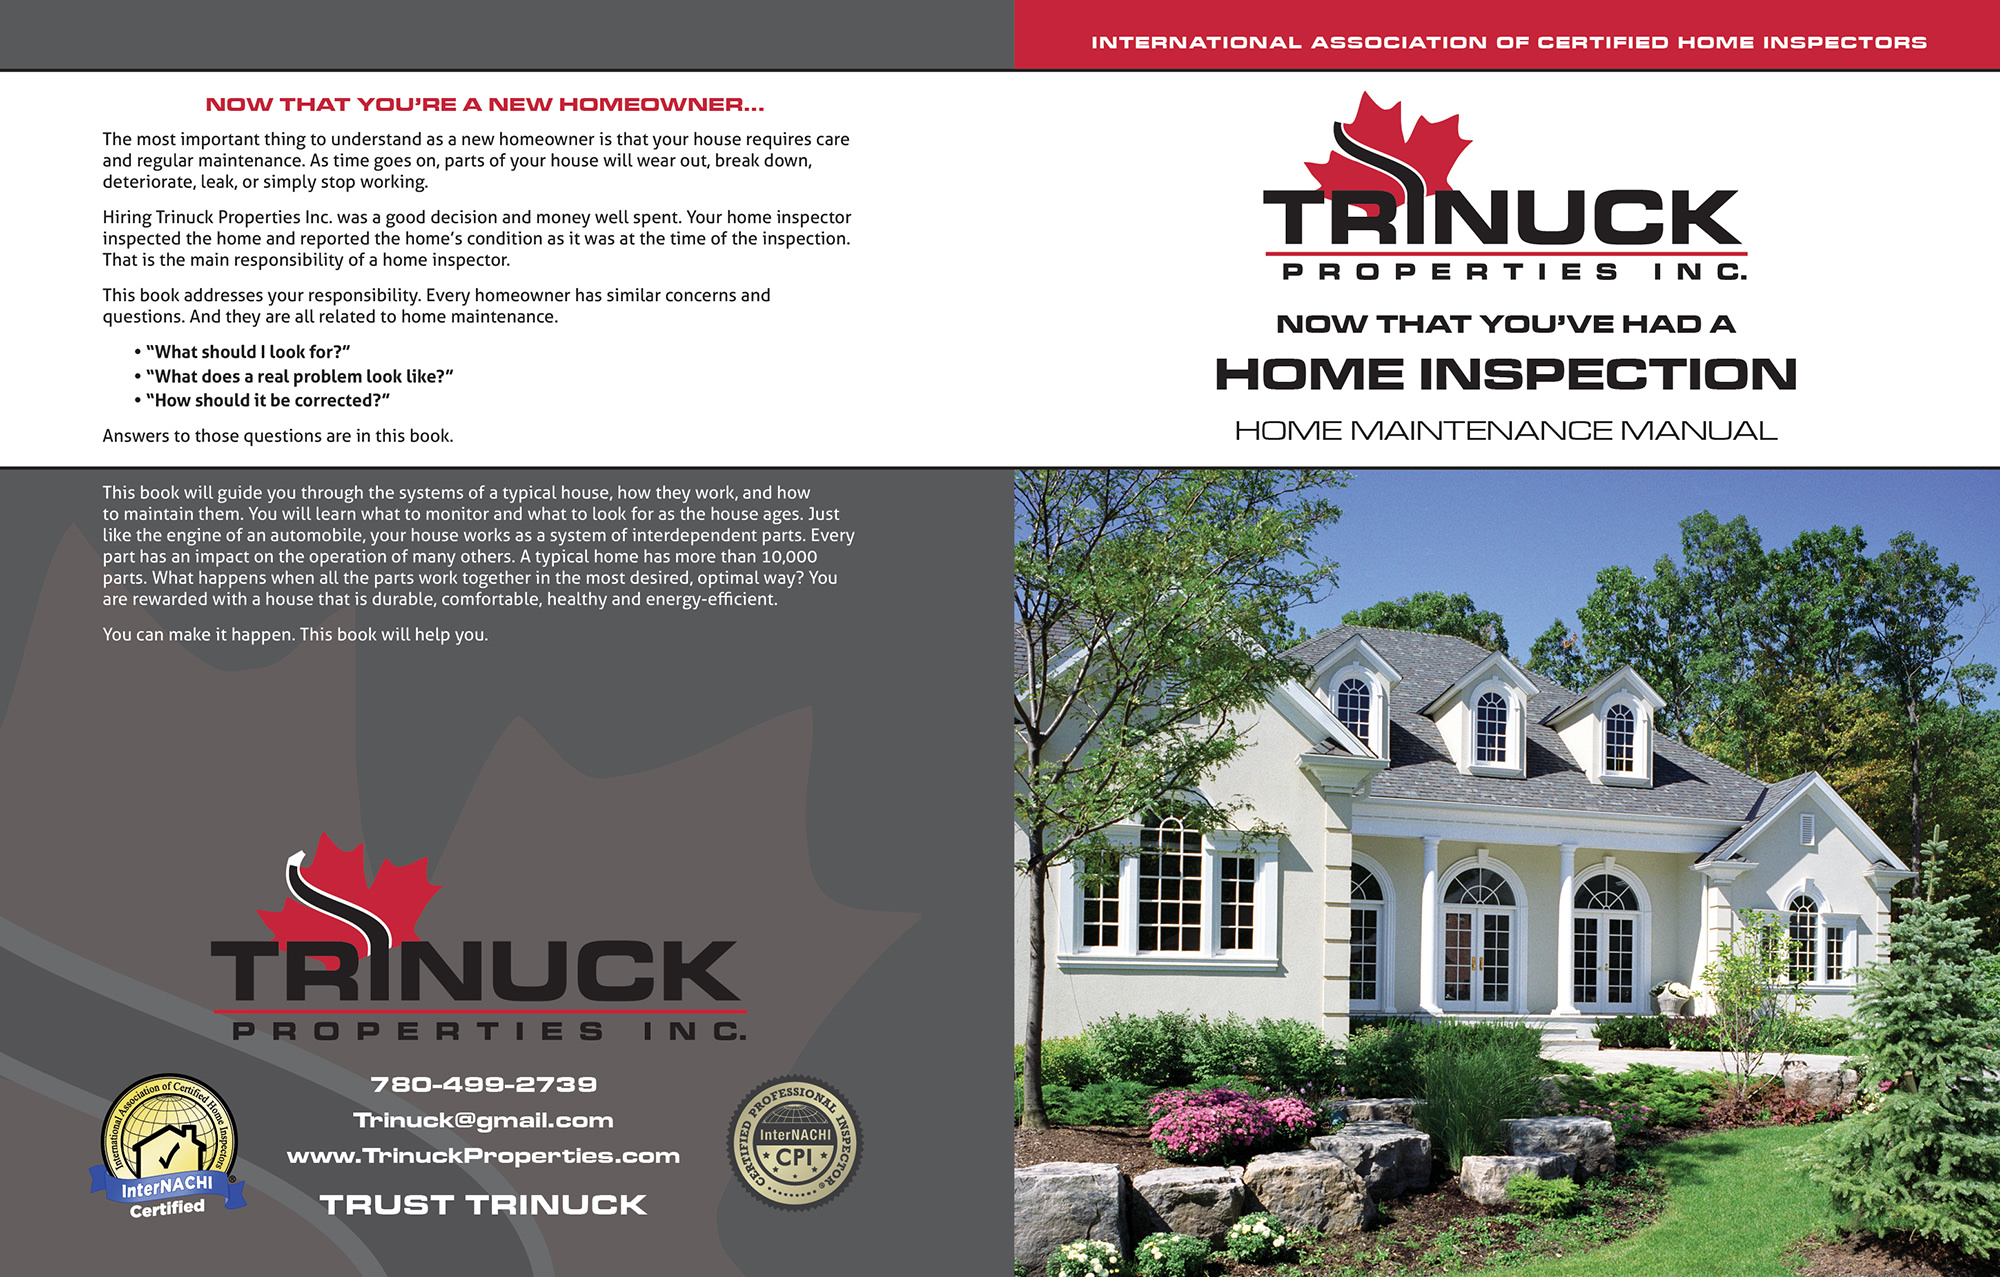 Custom Home Maintenance Book for Trinuck Properties